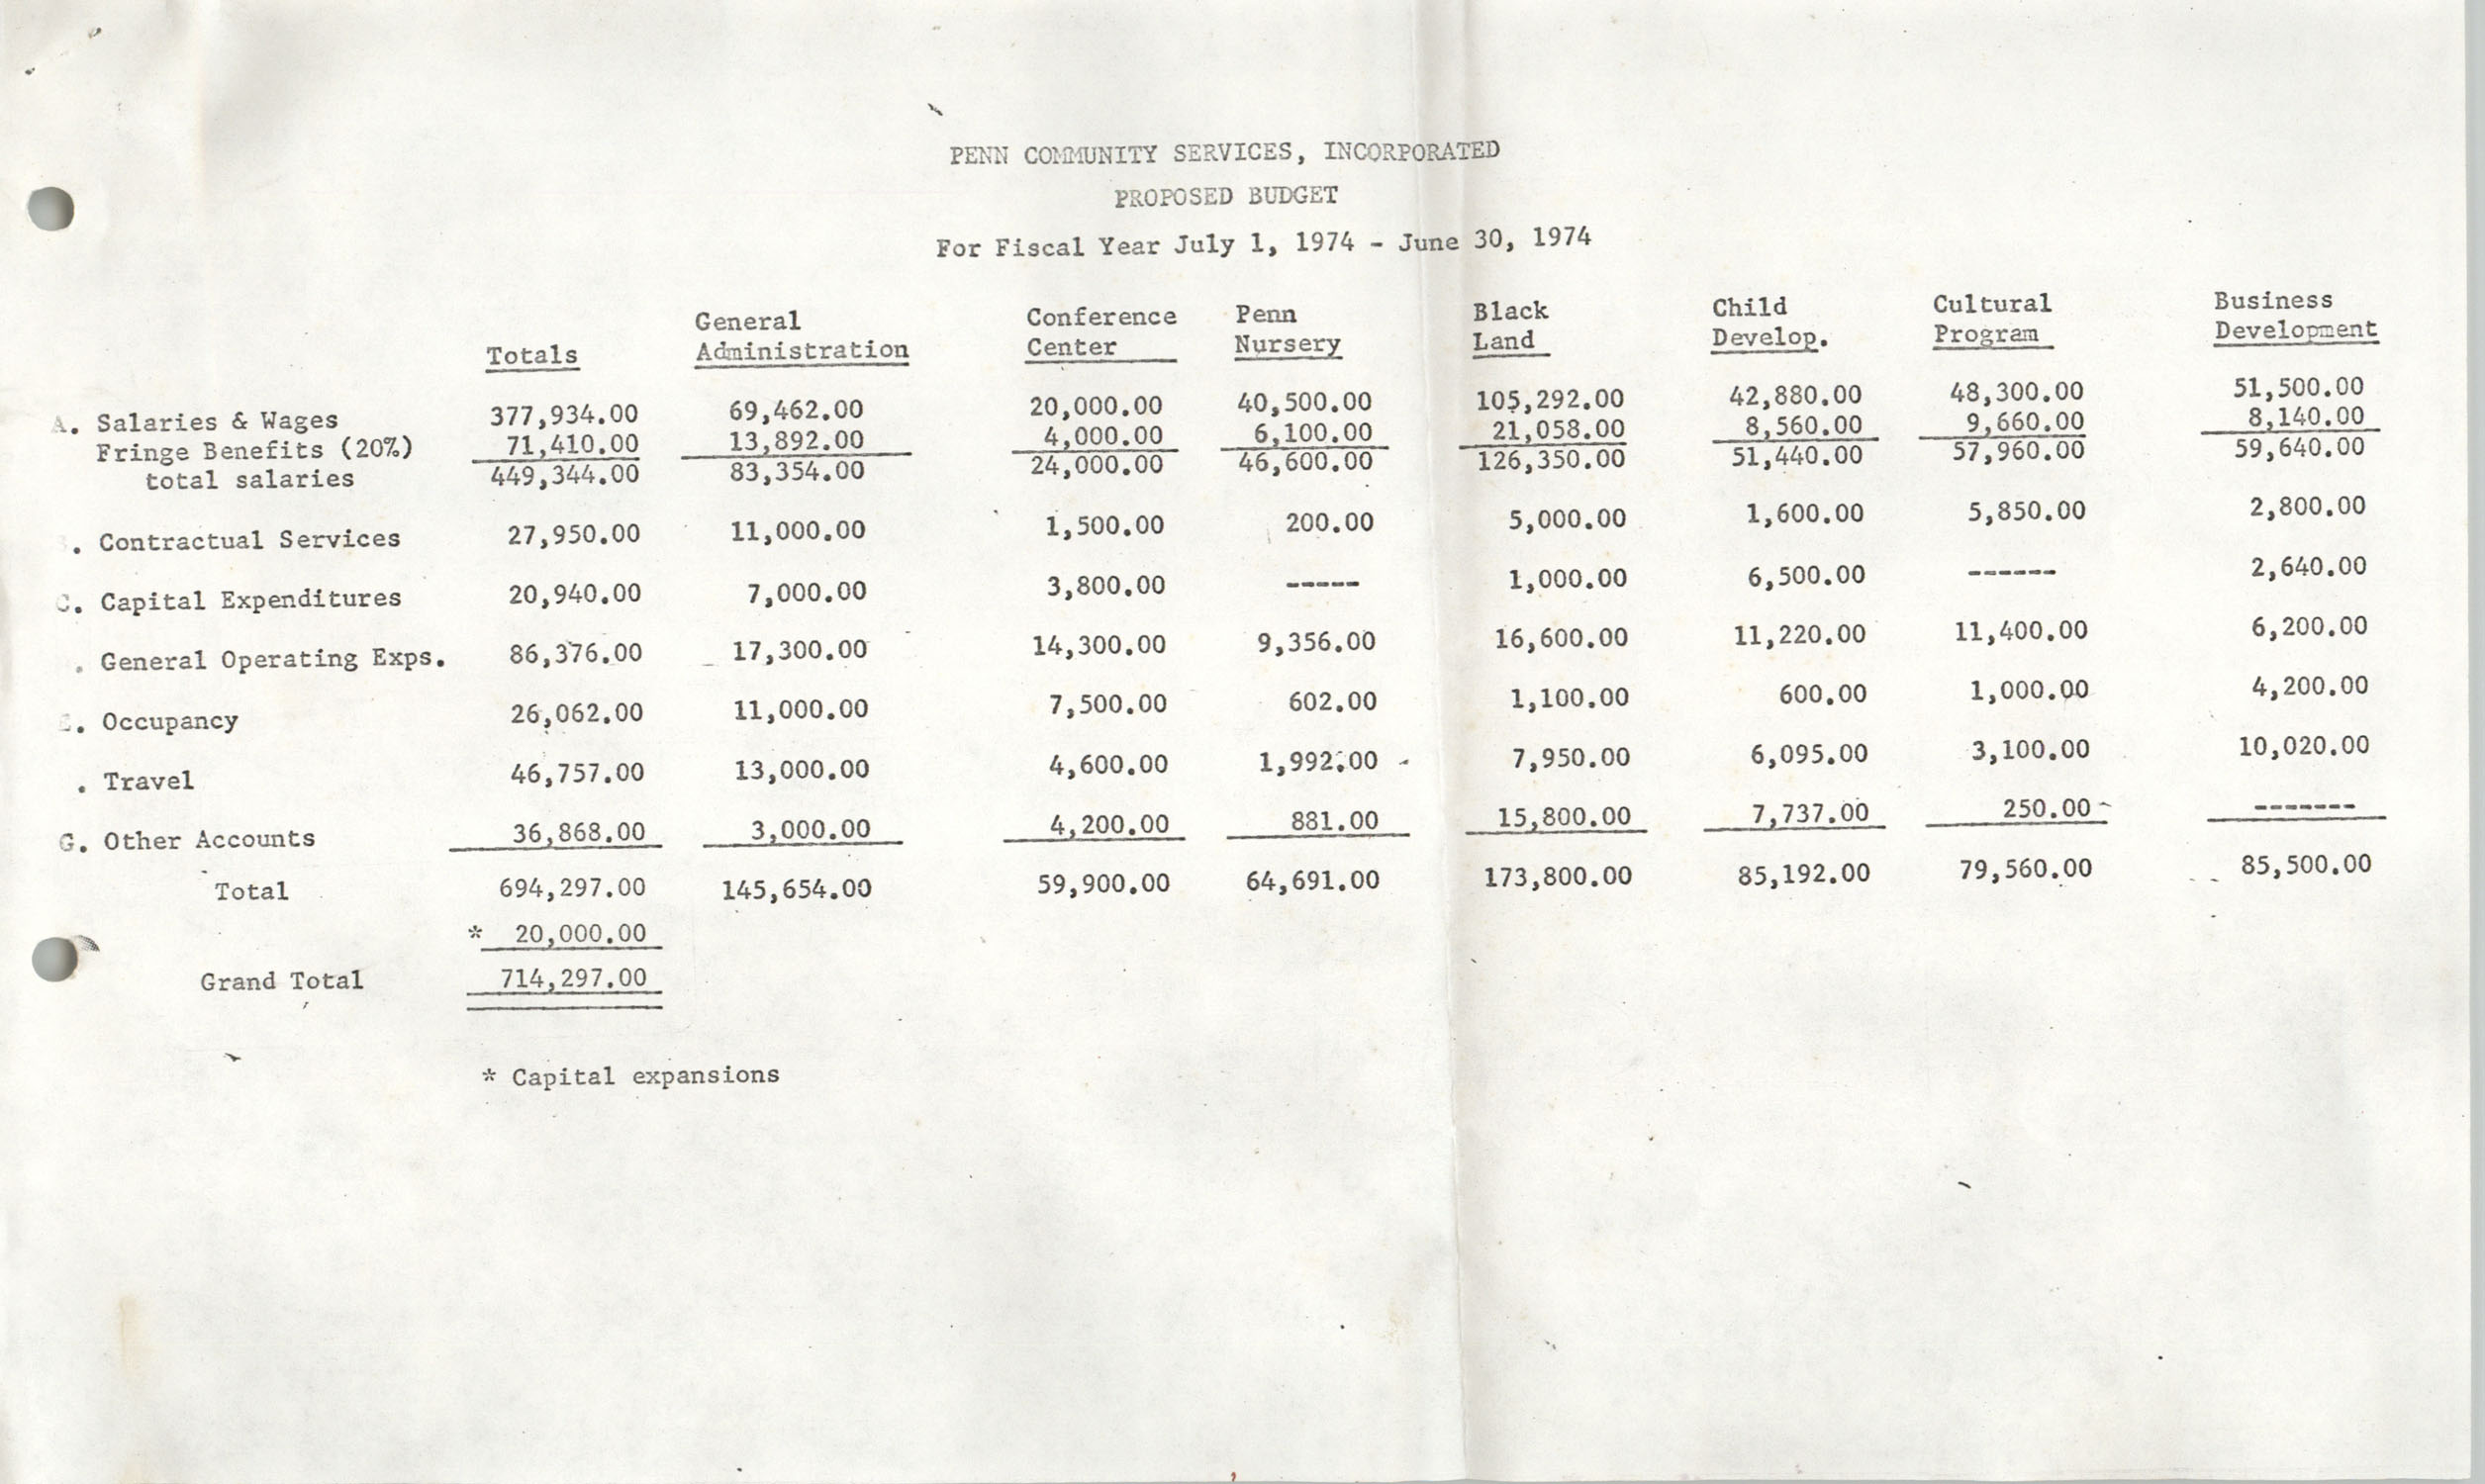 Proposed Budget, Penn Community Services, July 1, 1974 to June 30, 1974